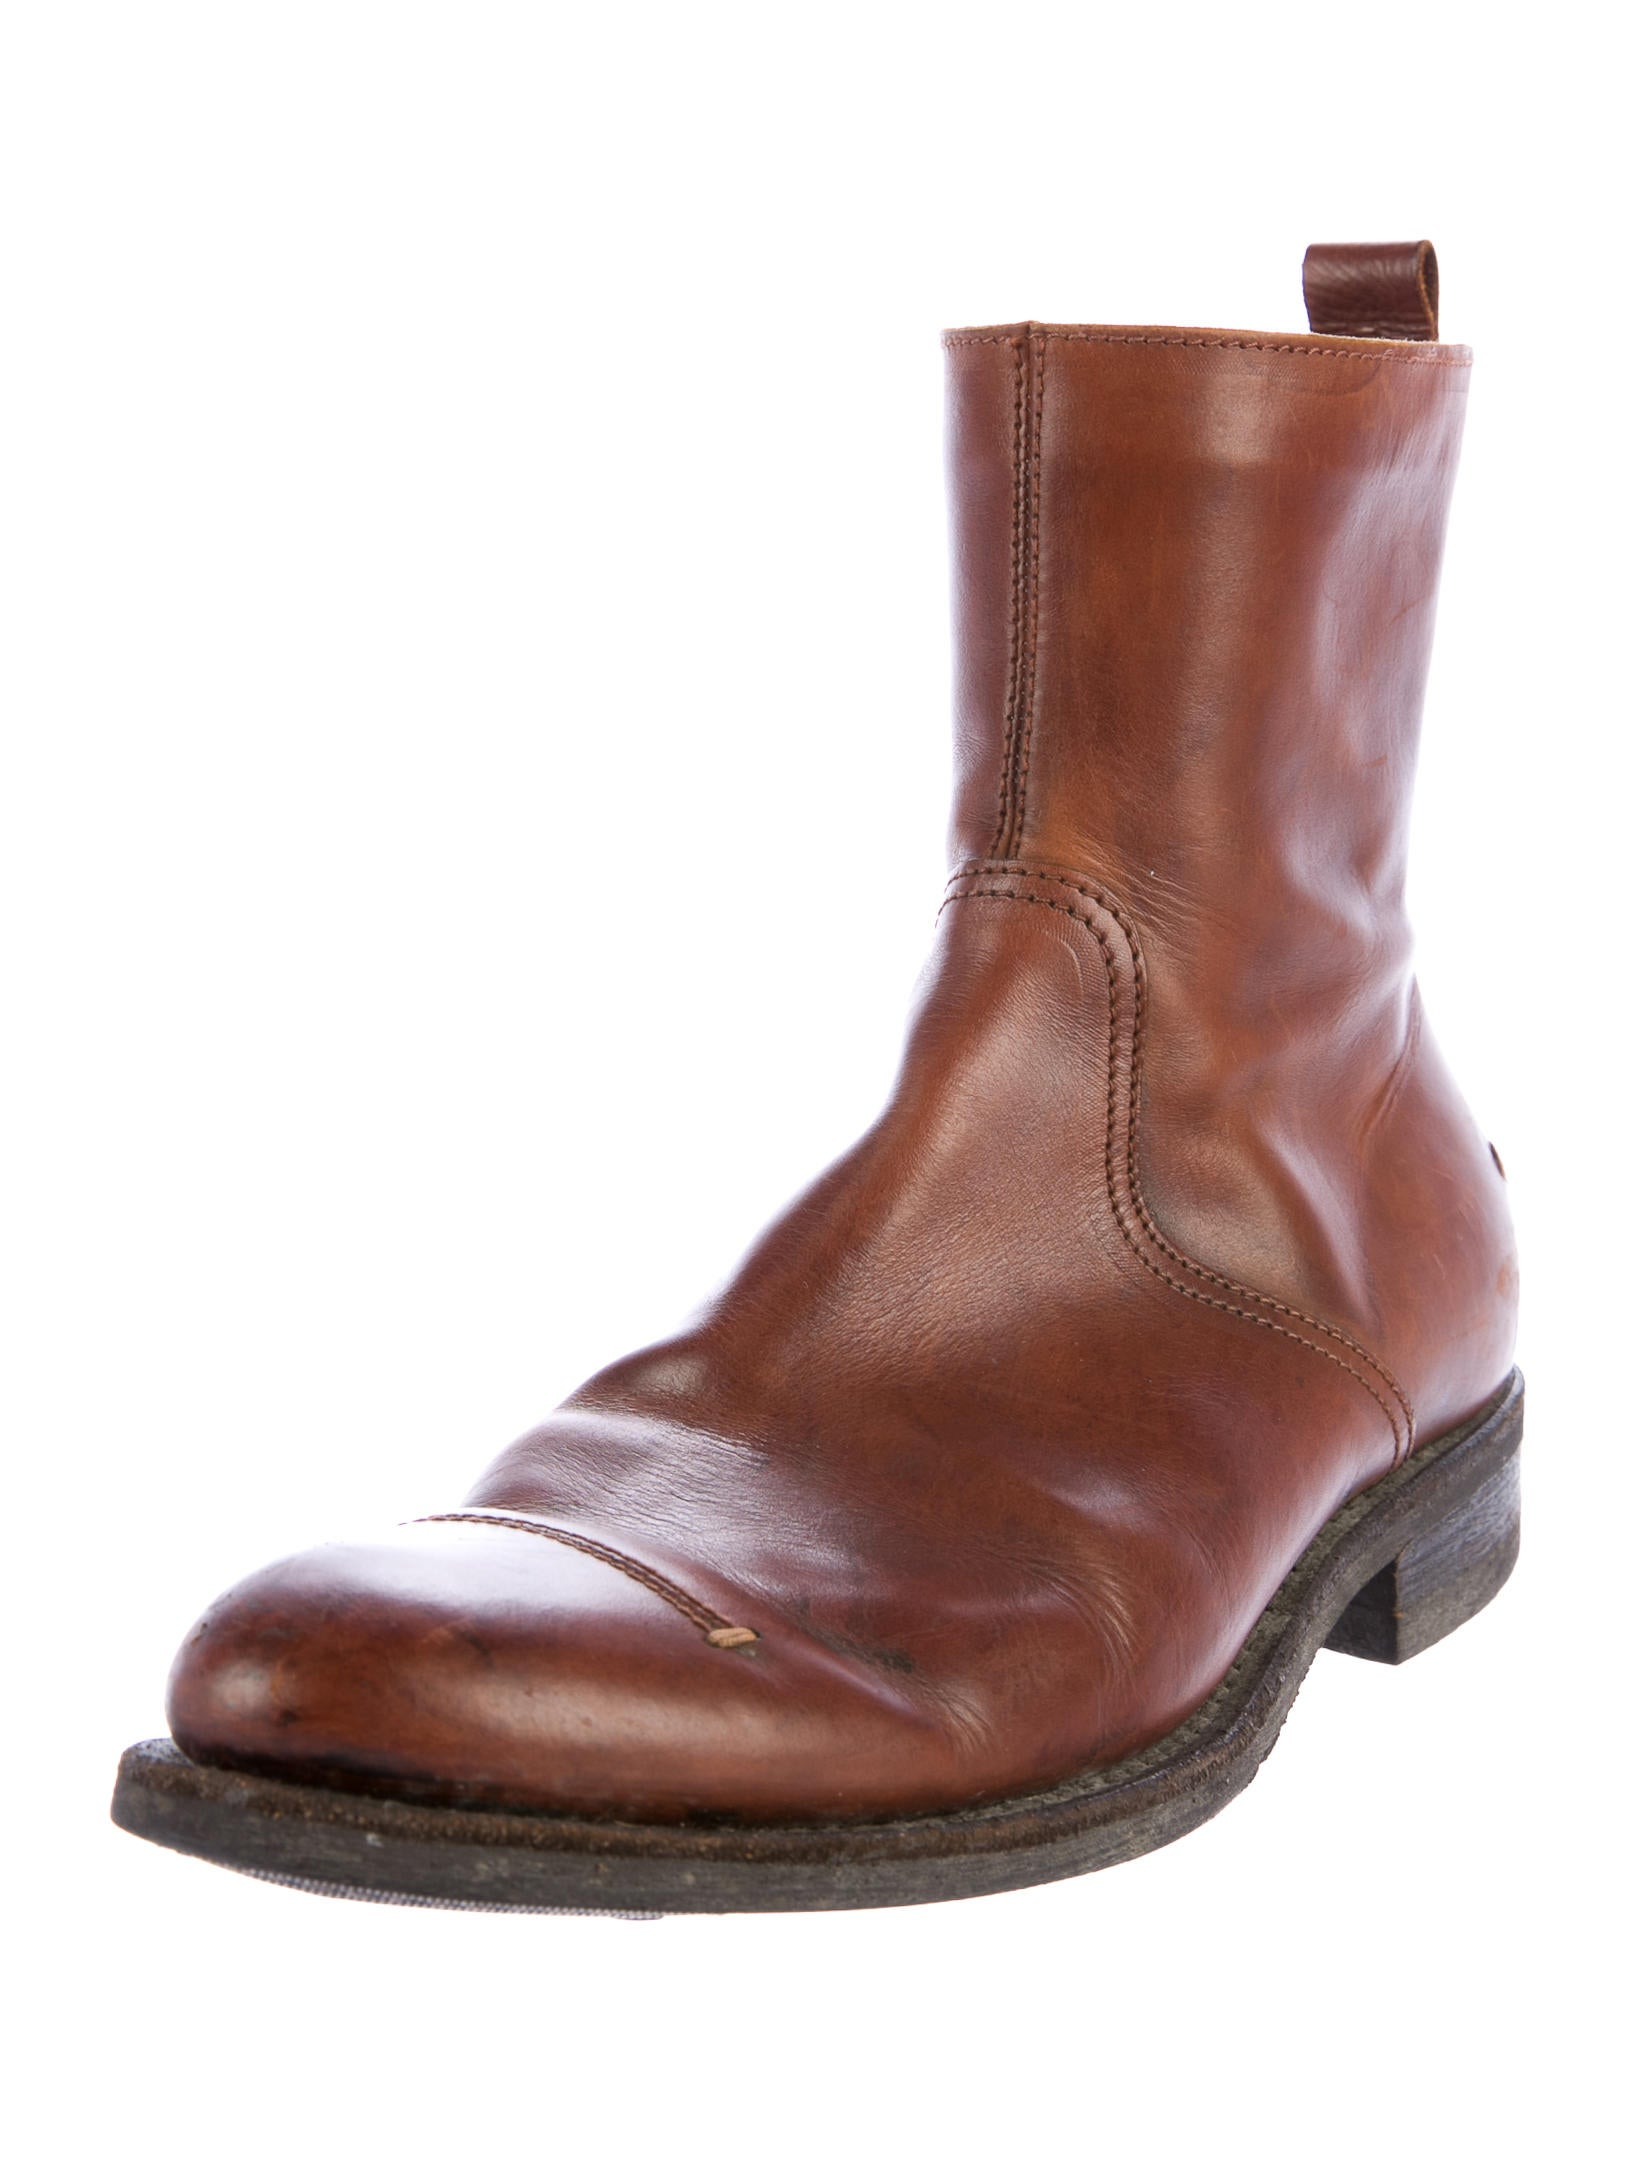 costume national leather ankle boots shoes cot24330